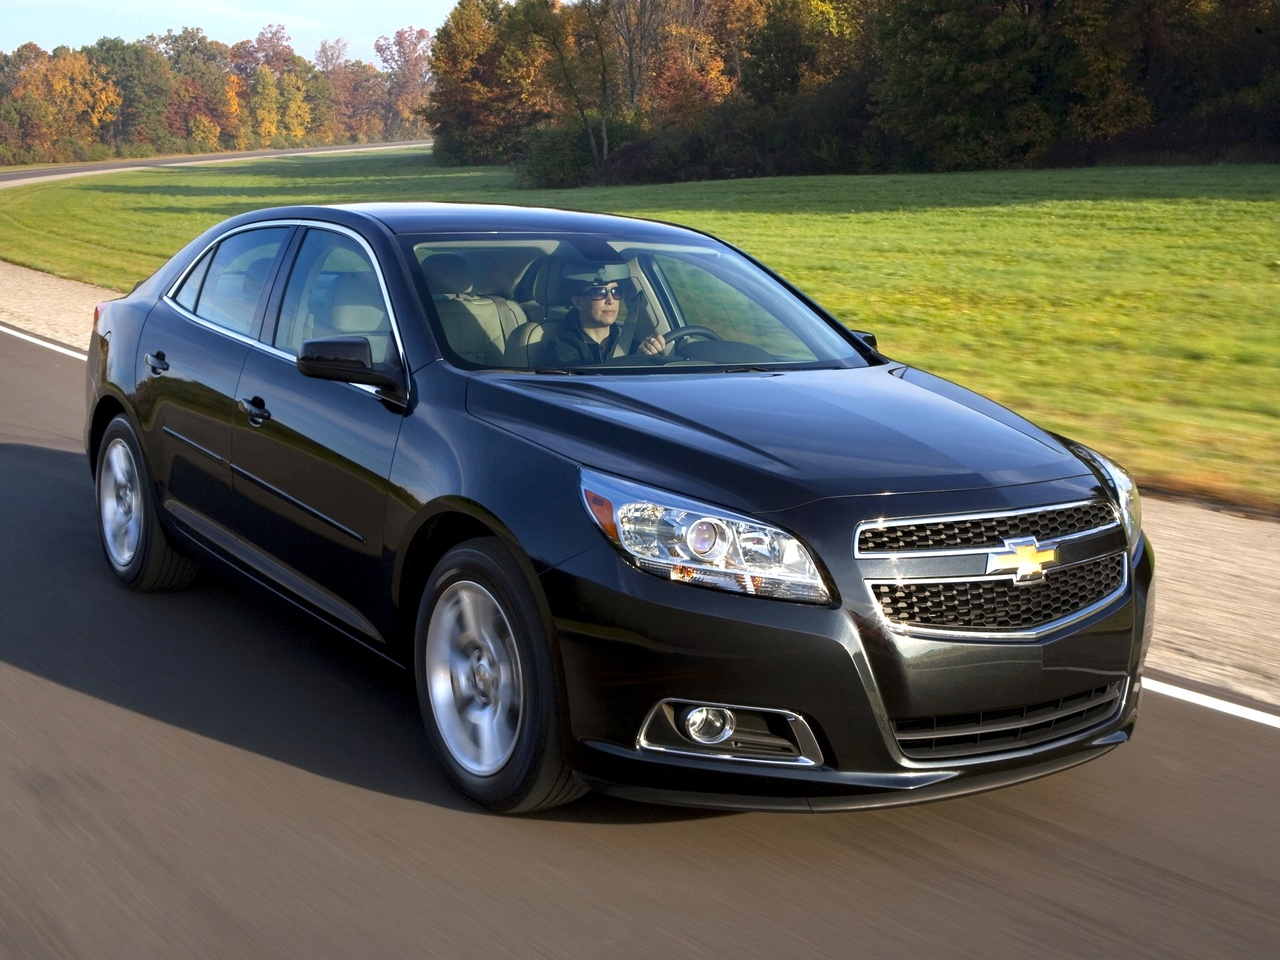 chevrolet malibu eco 2011 chevrolet malibu eco 2011 photo. Cars Review. Best American Auto & Cars Review